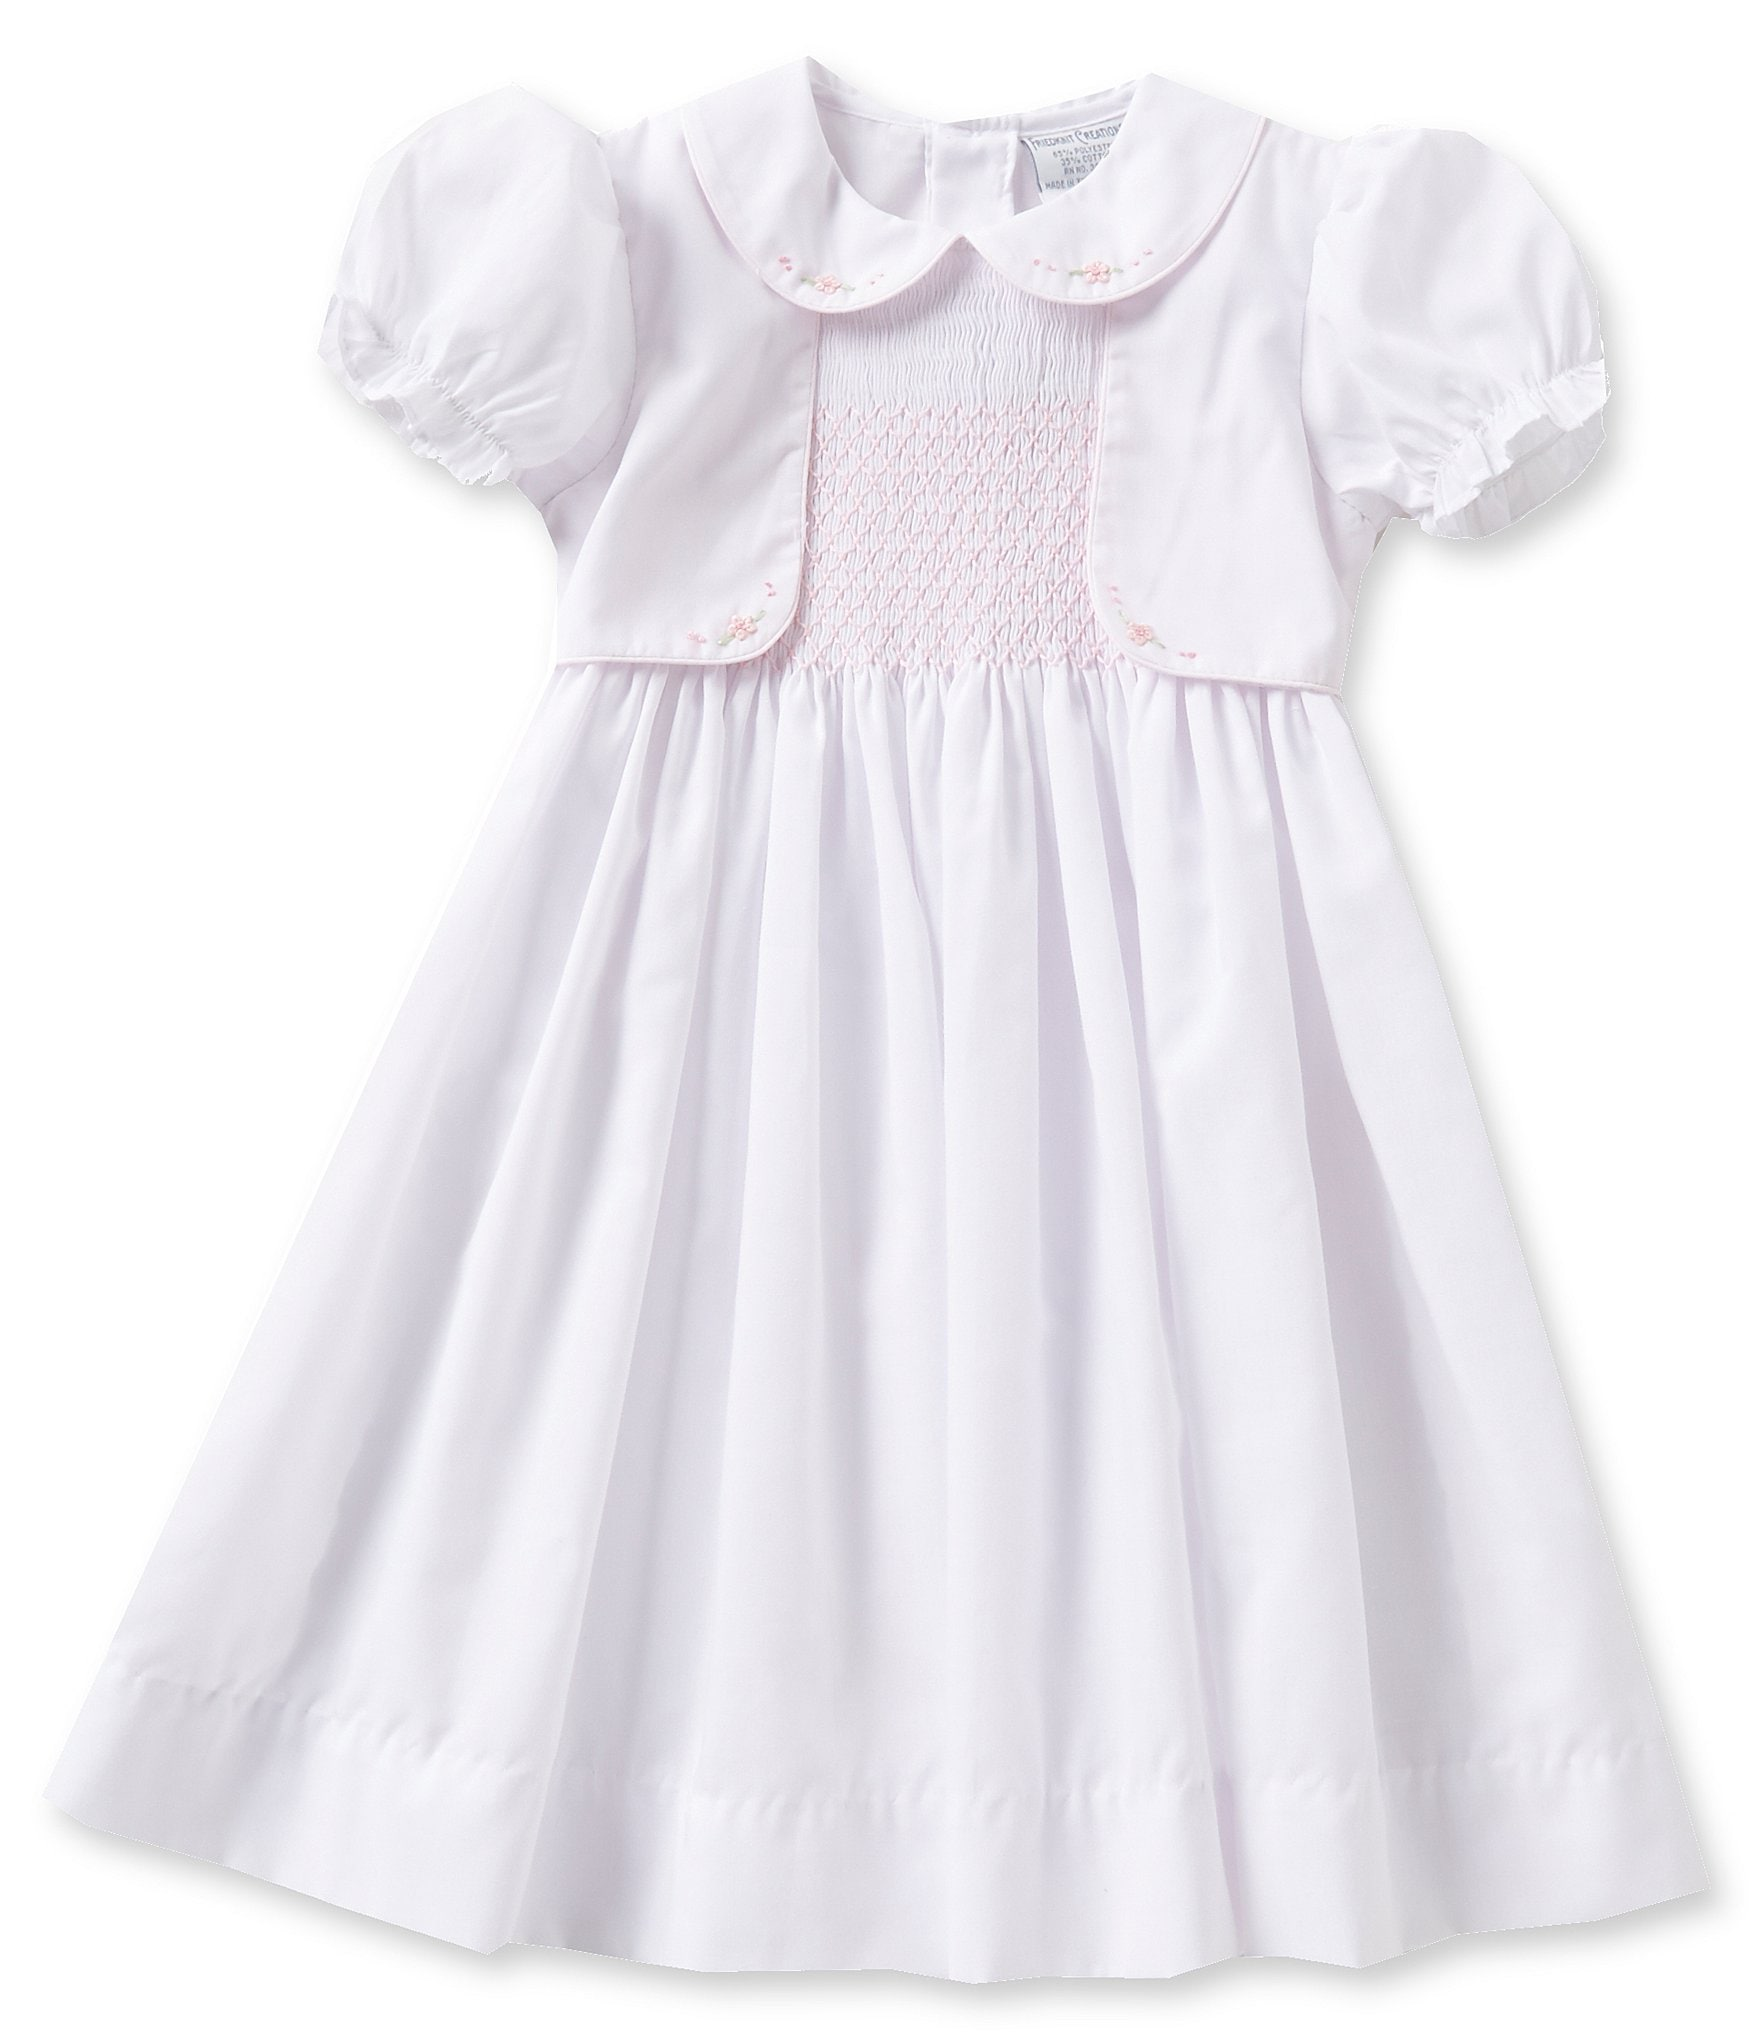 Friedknit Creations Baby Girls 12 24 Months Mock Vest